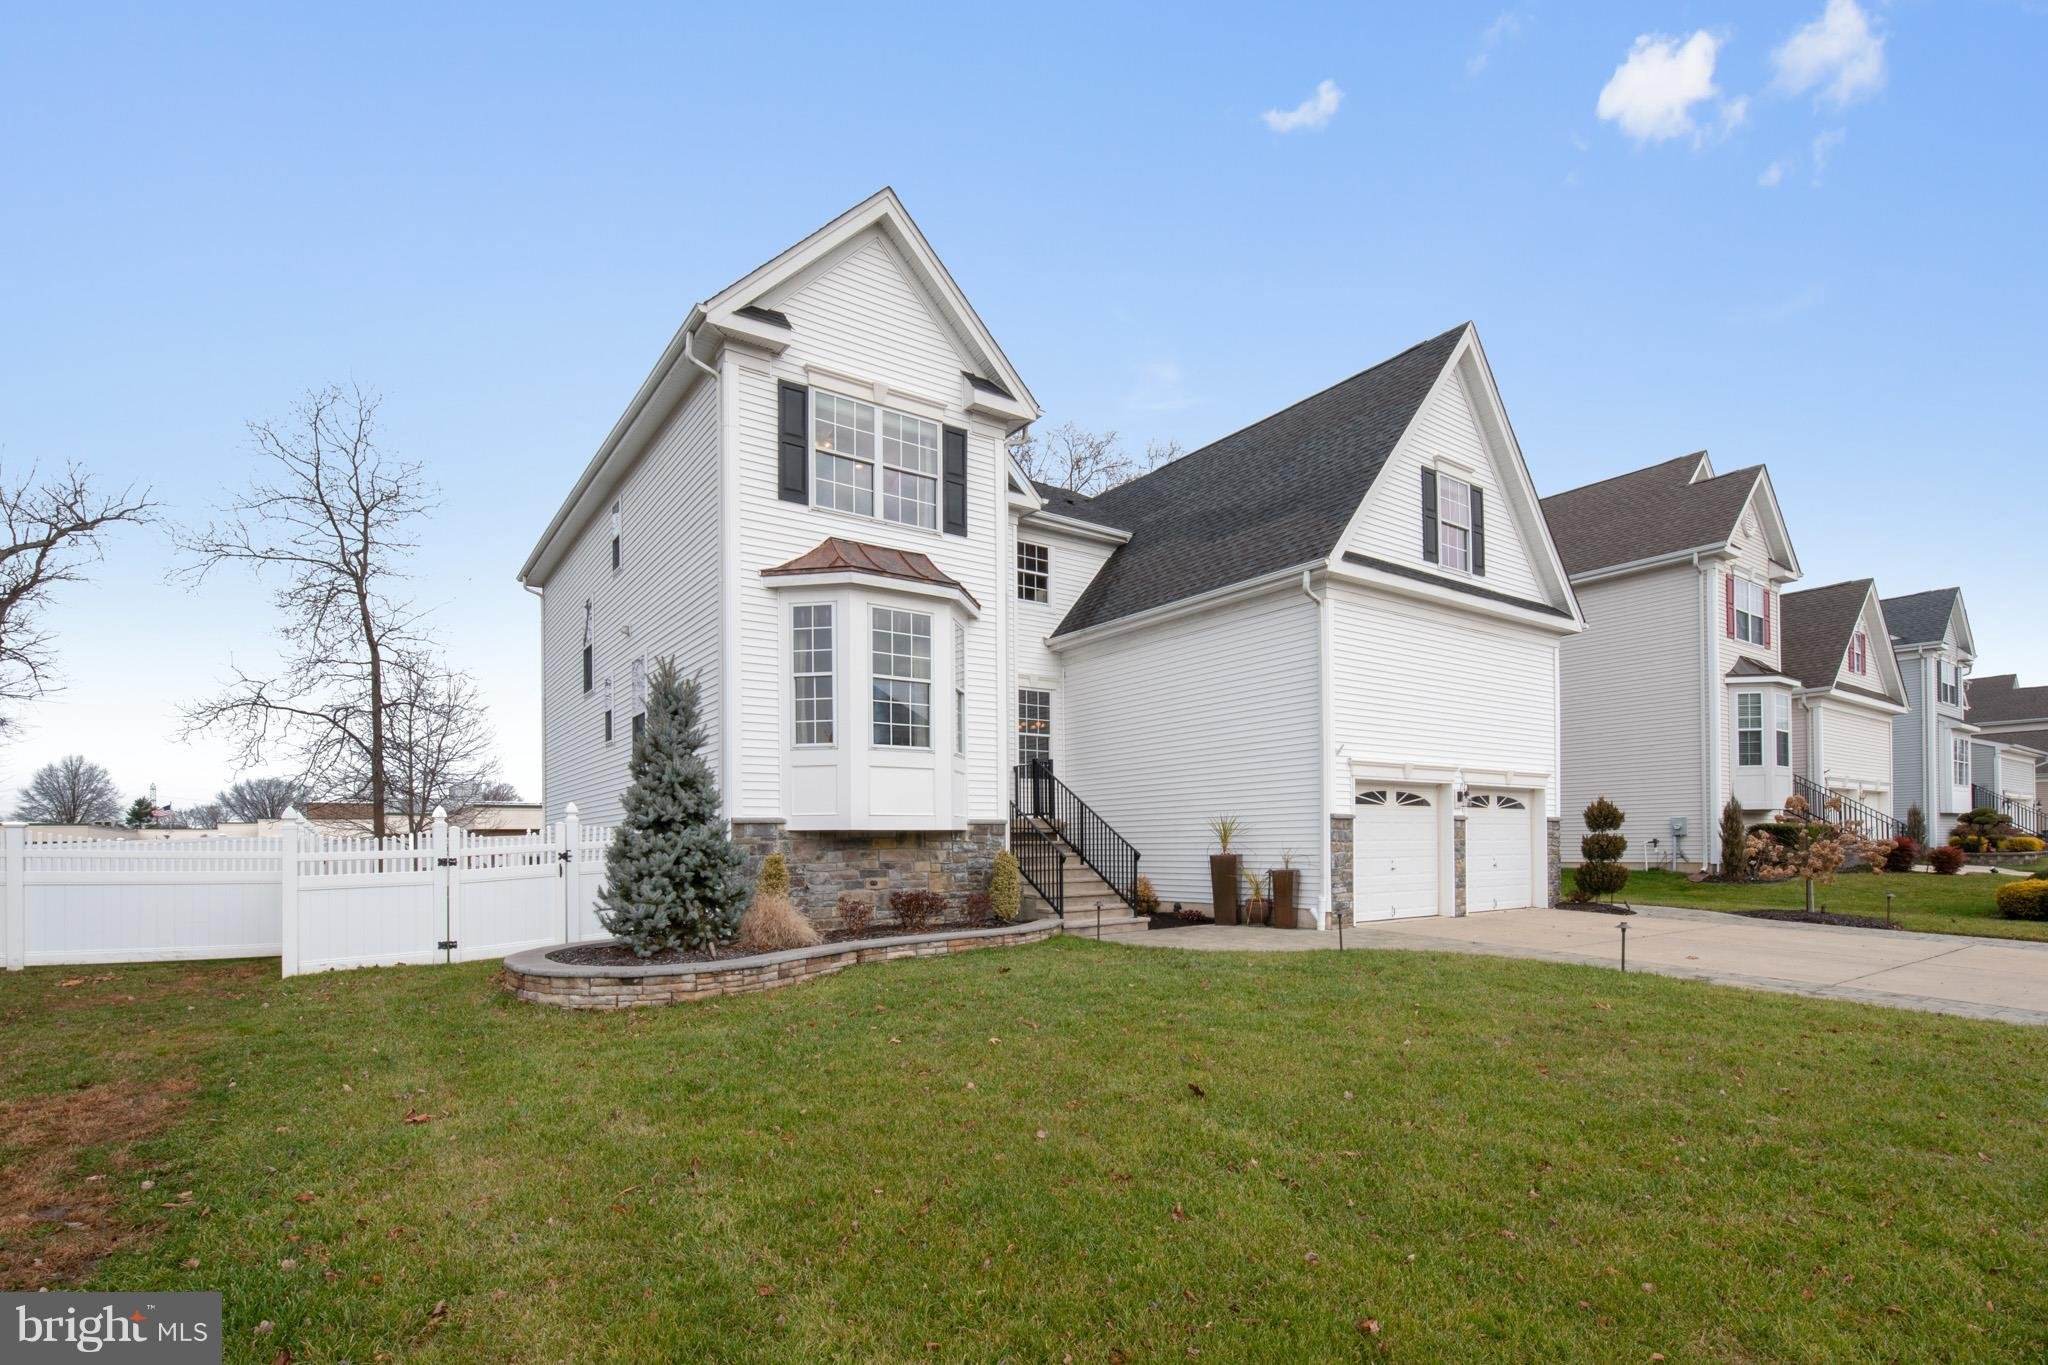 631 WORCESTER, WEST DEPTFORD, NJ 08086